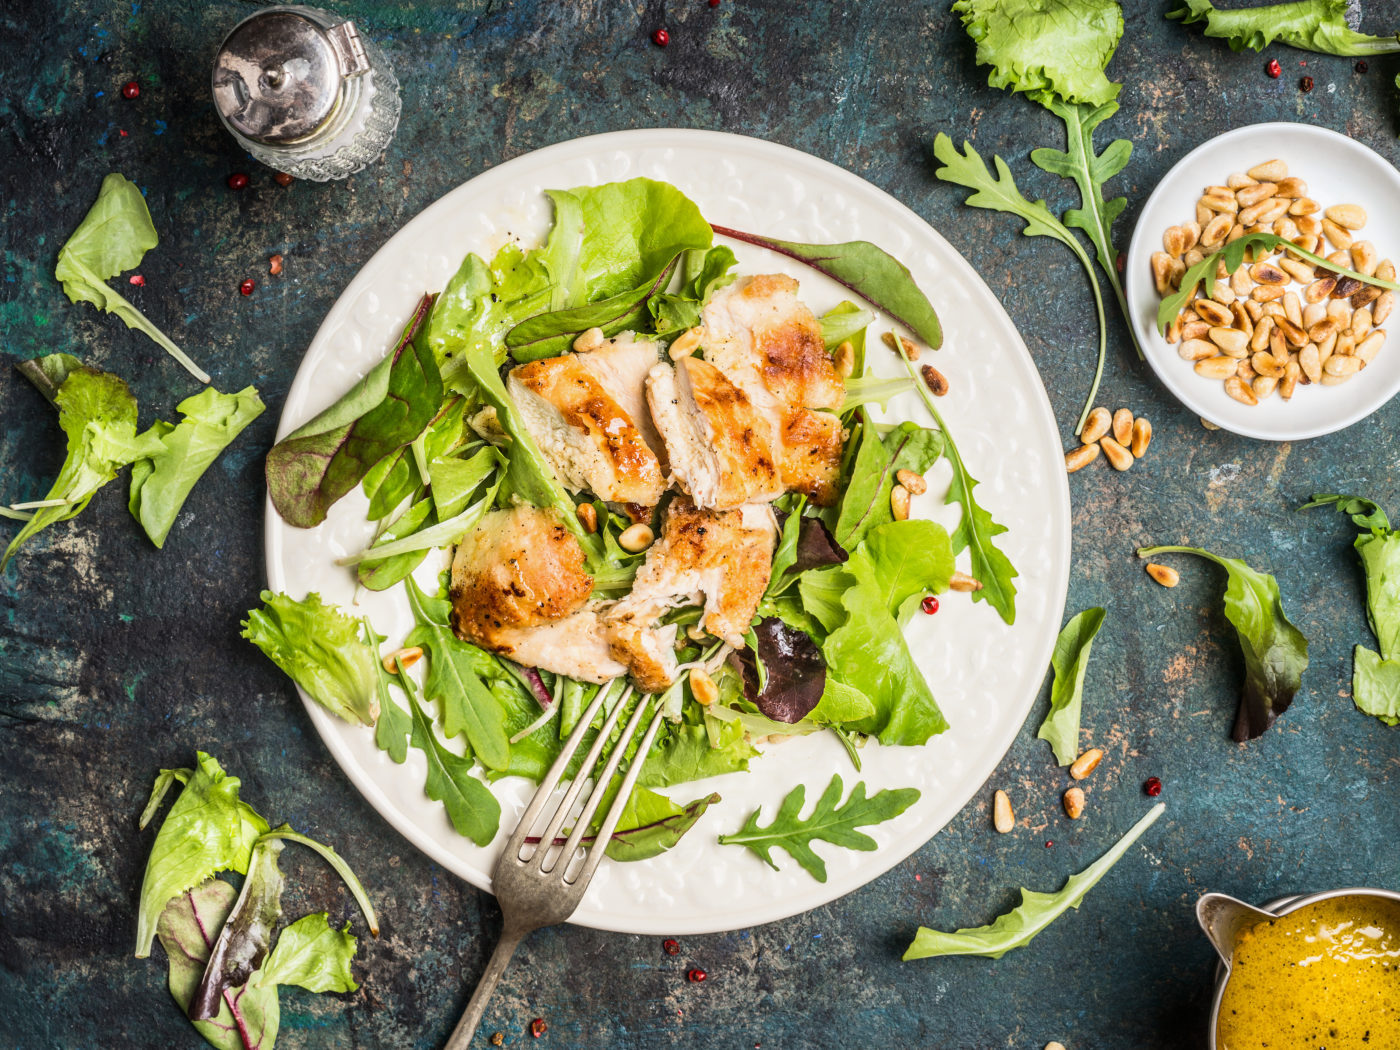 Chicken green salad served on rustic table with pine nuts and oil dressing, top view